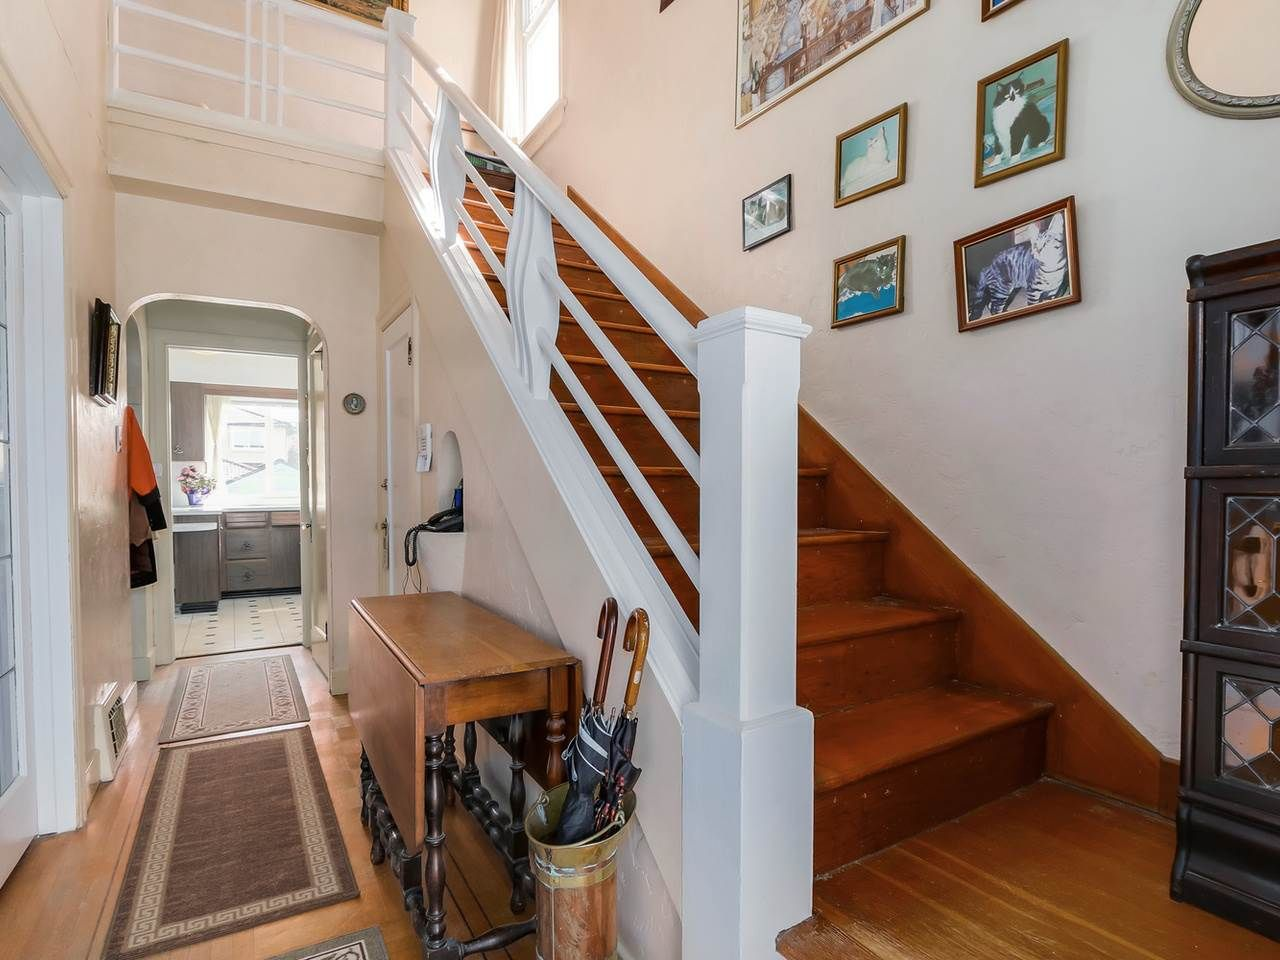 Photo 12: Photos: 2796 W 21ST Avenue in Vancouver: Arbutus House for sale (Vancouver West)  : MLS®# R2078868